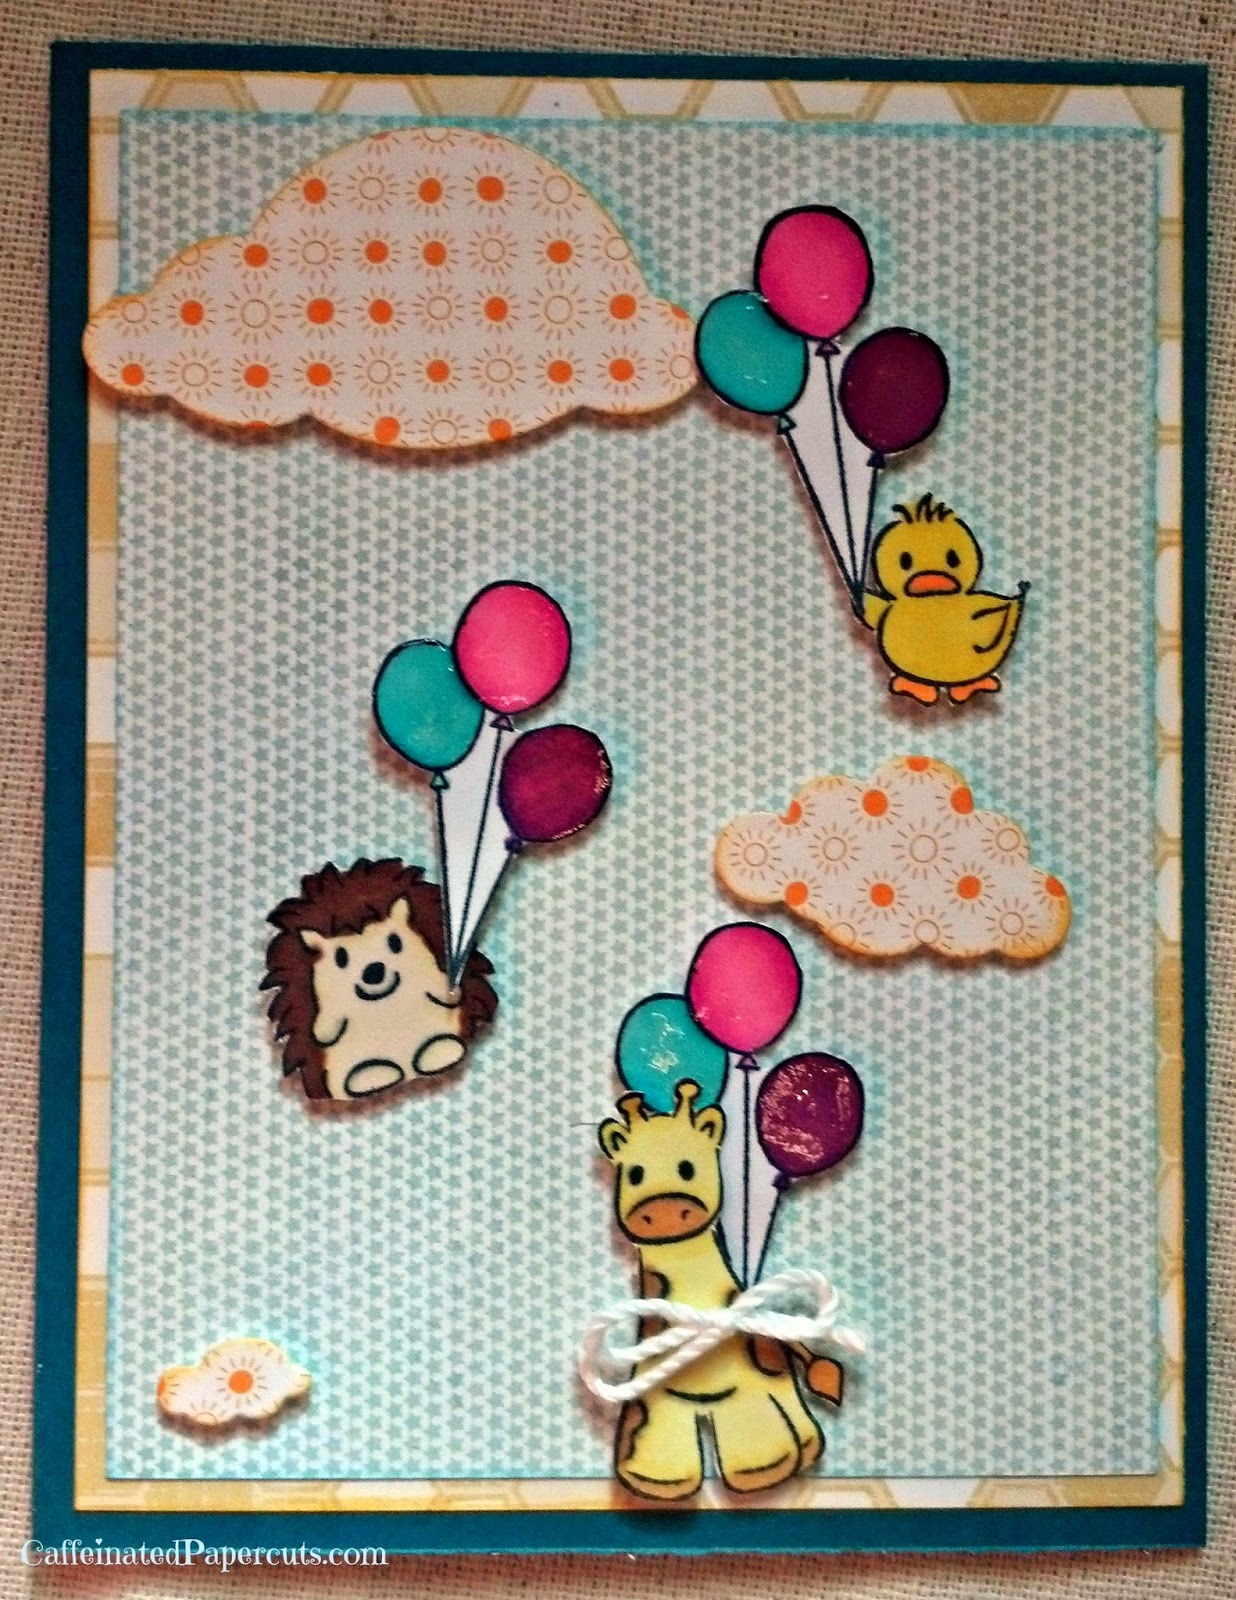 denami giraffe hedgehog duck balloons card